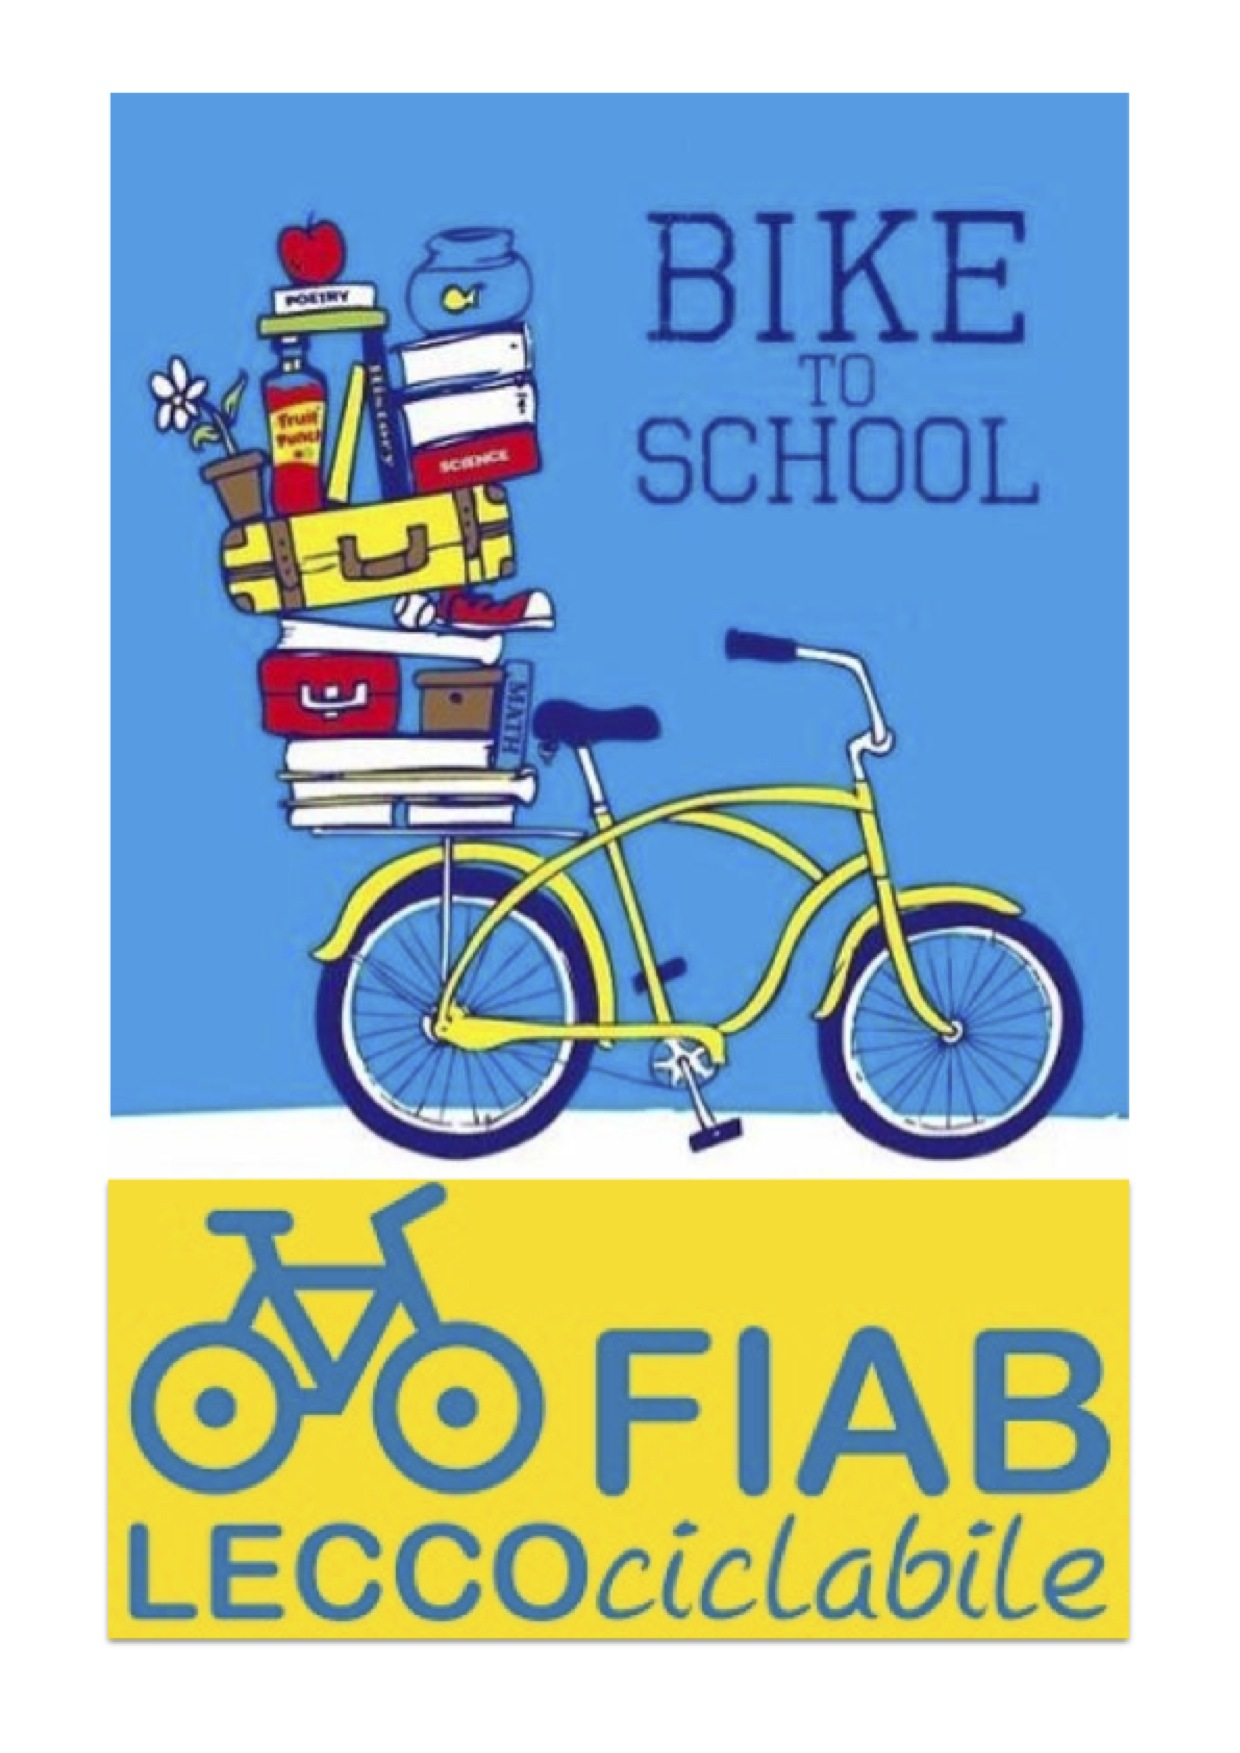 18 settembre  BIKE TO SCHOOL  & BIKE TO WORK